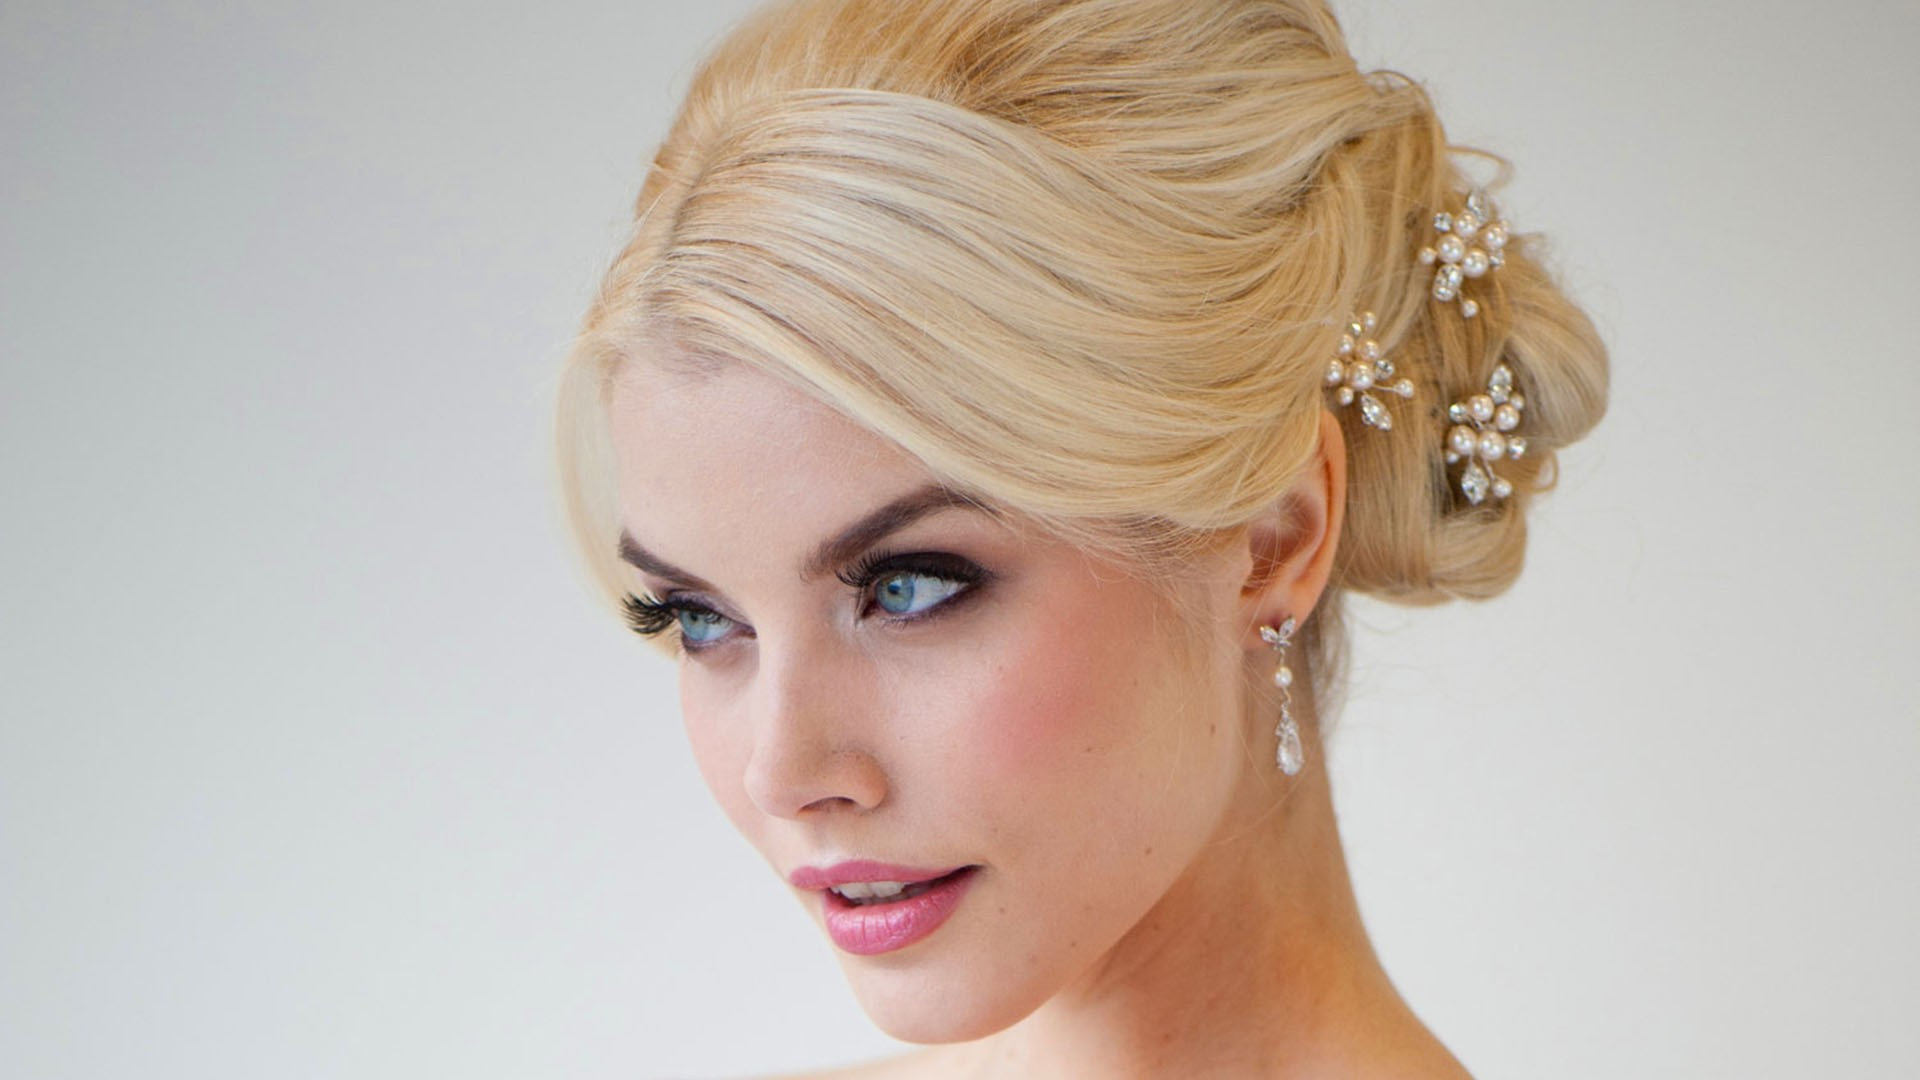 wedding hair styles up با انواع مدل مو عروس بر اساس فرم صورت آشنا شوید مدل مو عروس 4878